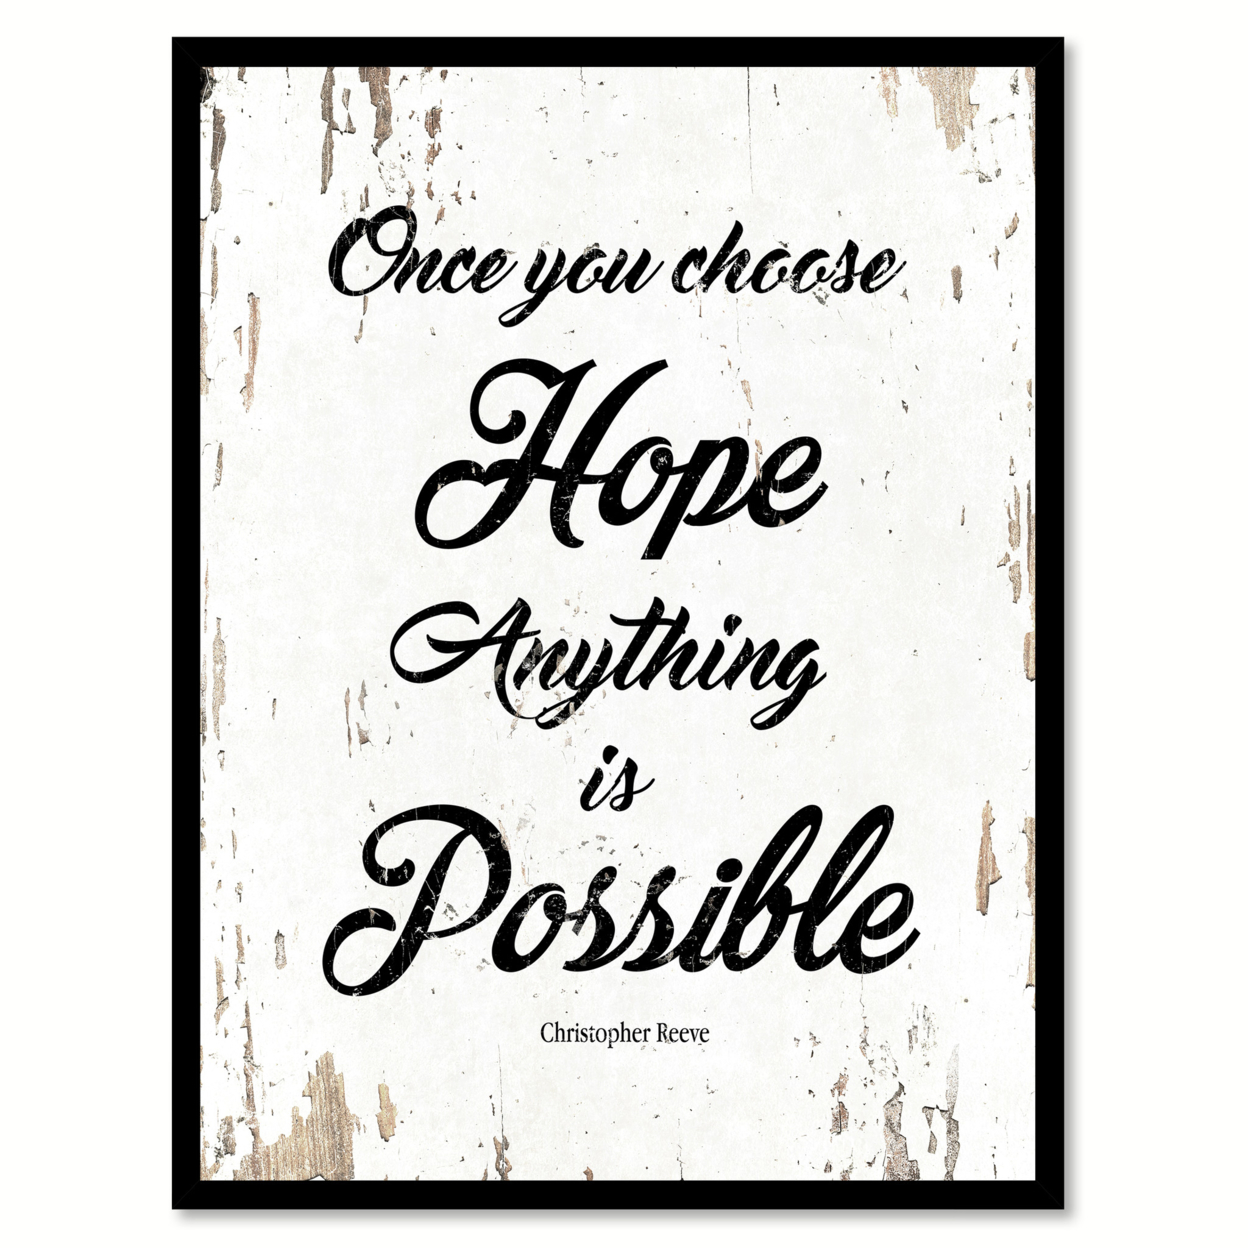 Once You Choose Hope Christopher Reeve Quote Saying Home Decor Wall Art Gift Ideas 111838 57f6c89fe2246165180e82e2